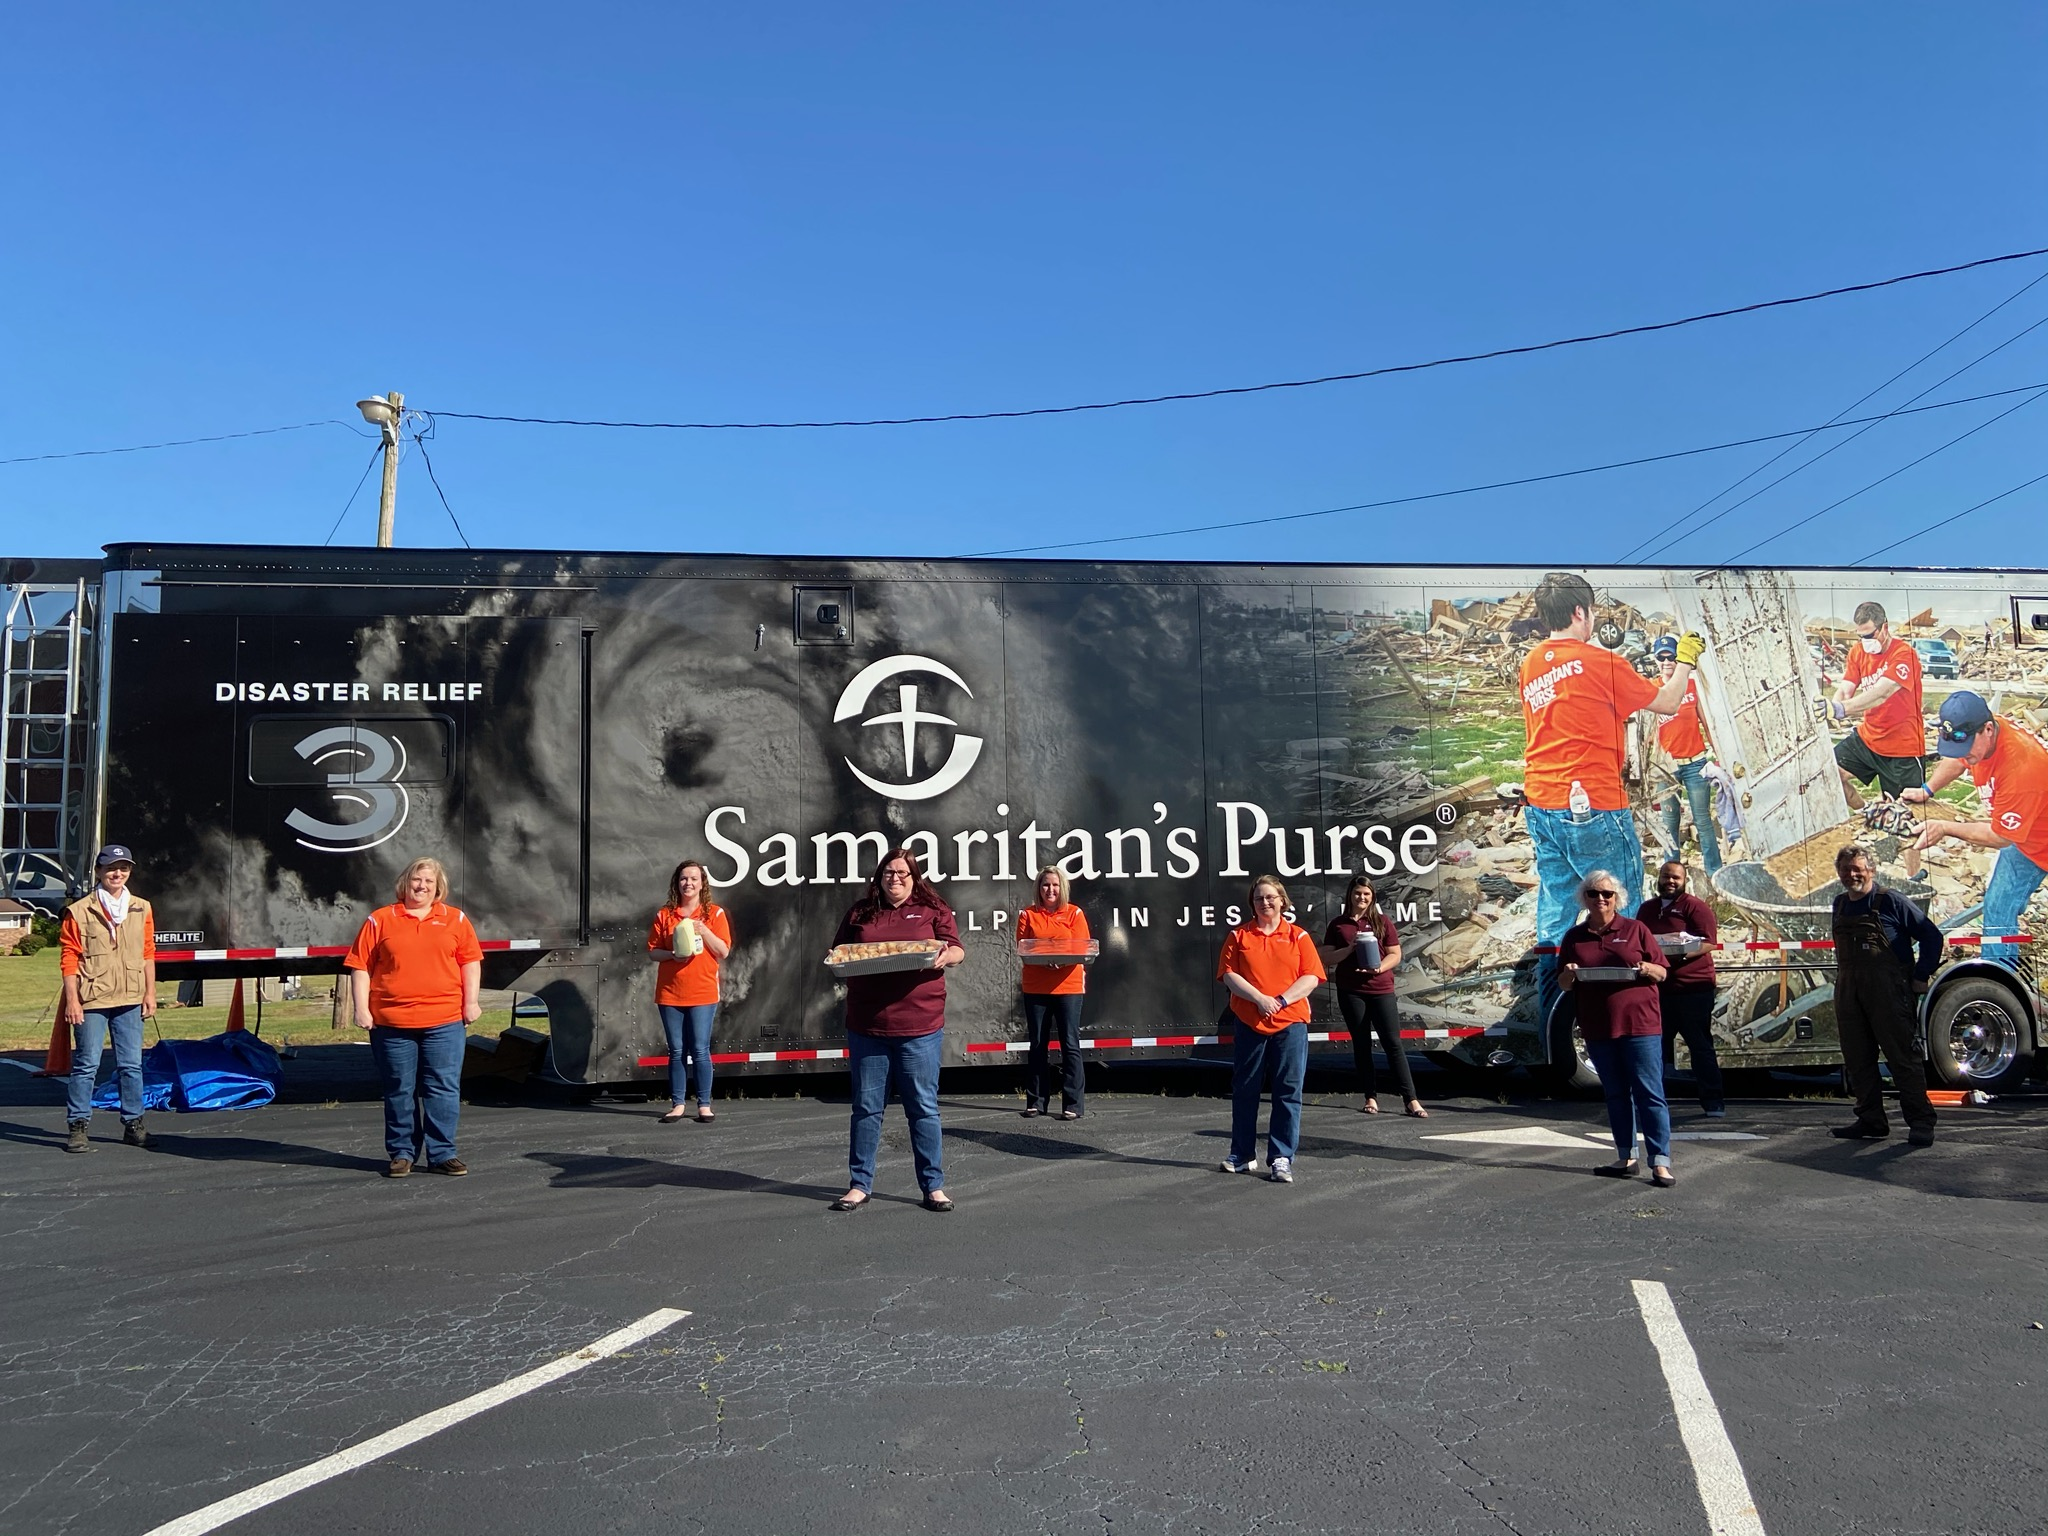 On a clear blue day, SCU staff stands spread out, holding up food supplies, alongside Samaritan's Purse volunteers in front of their large disaster relief van, reading number 3, in the church parking lot.